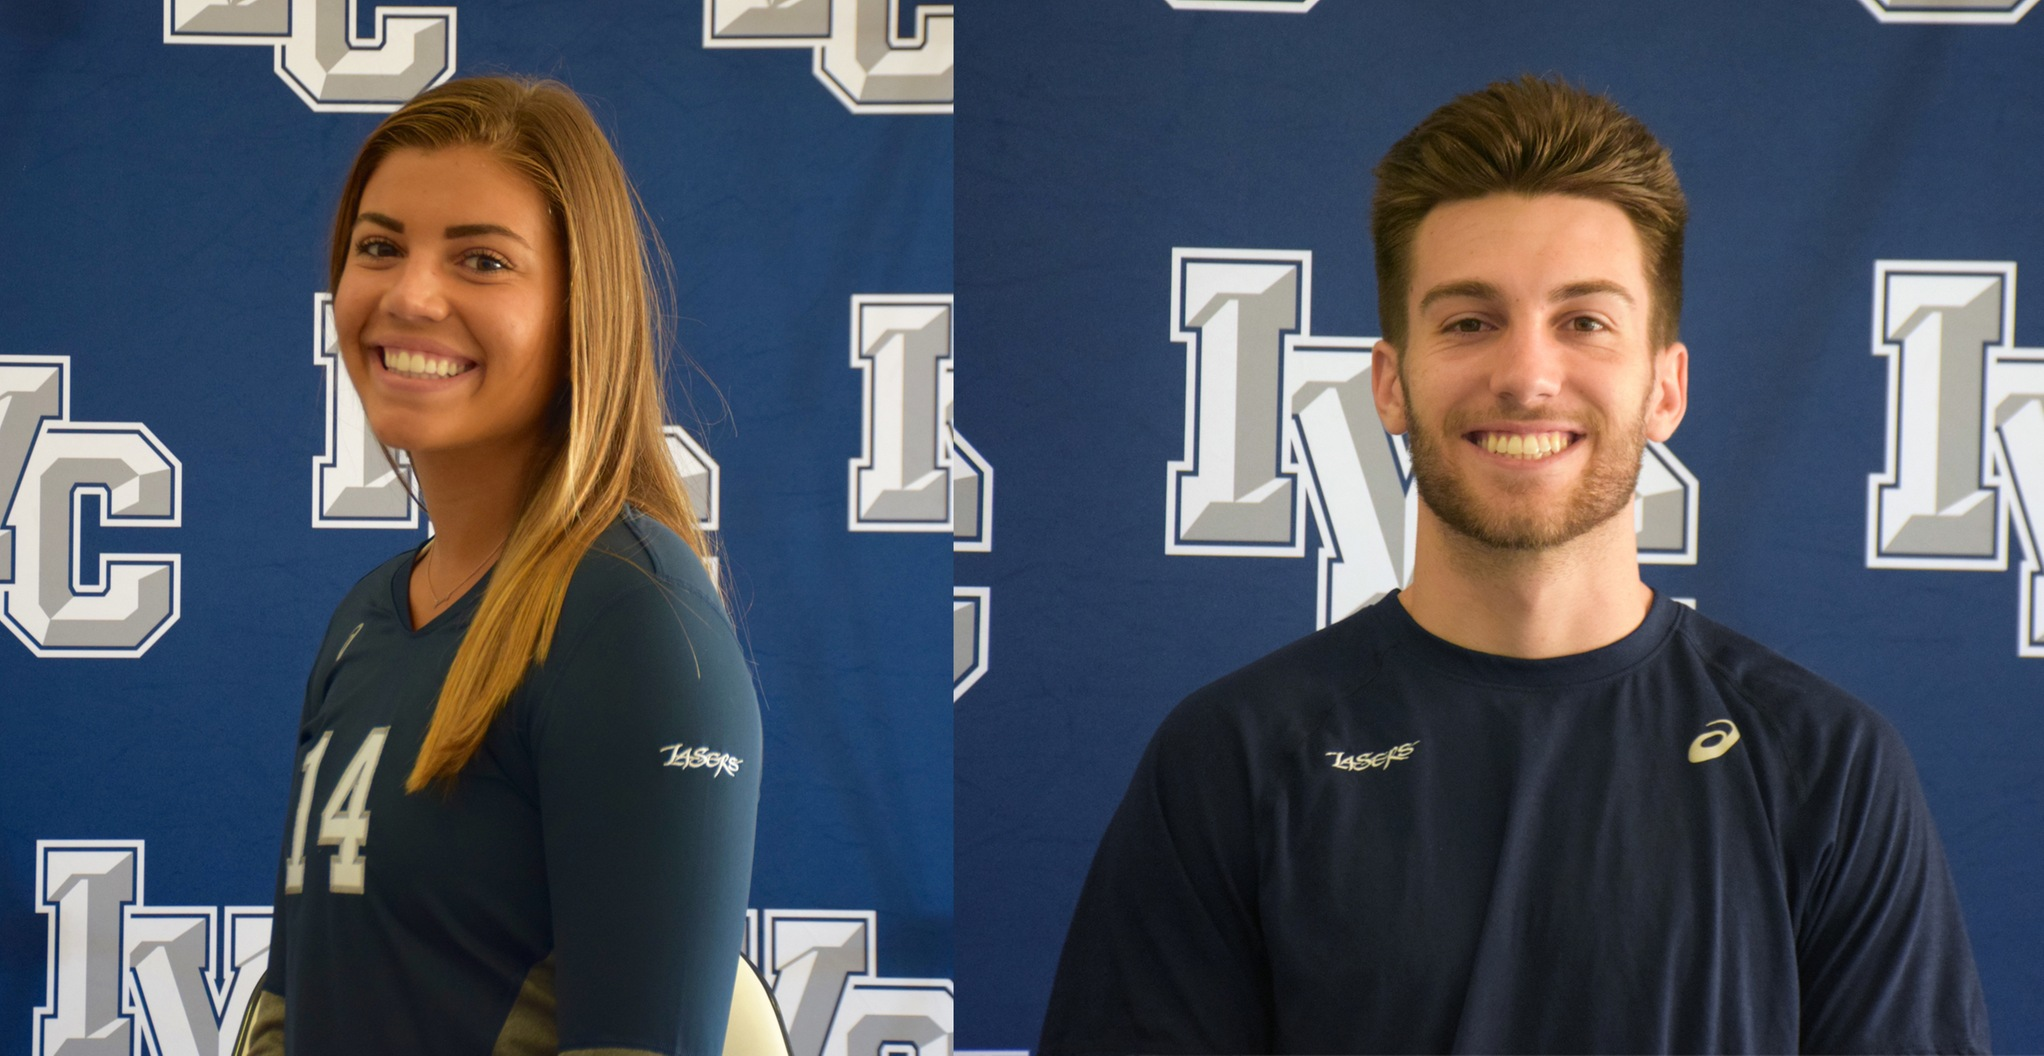 Ramseyer and McBain named IVC's scholar athletes of the year